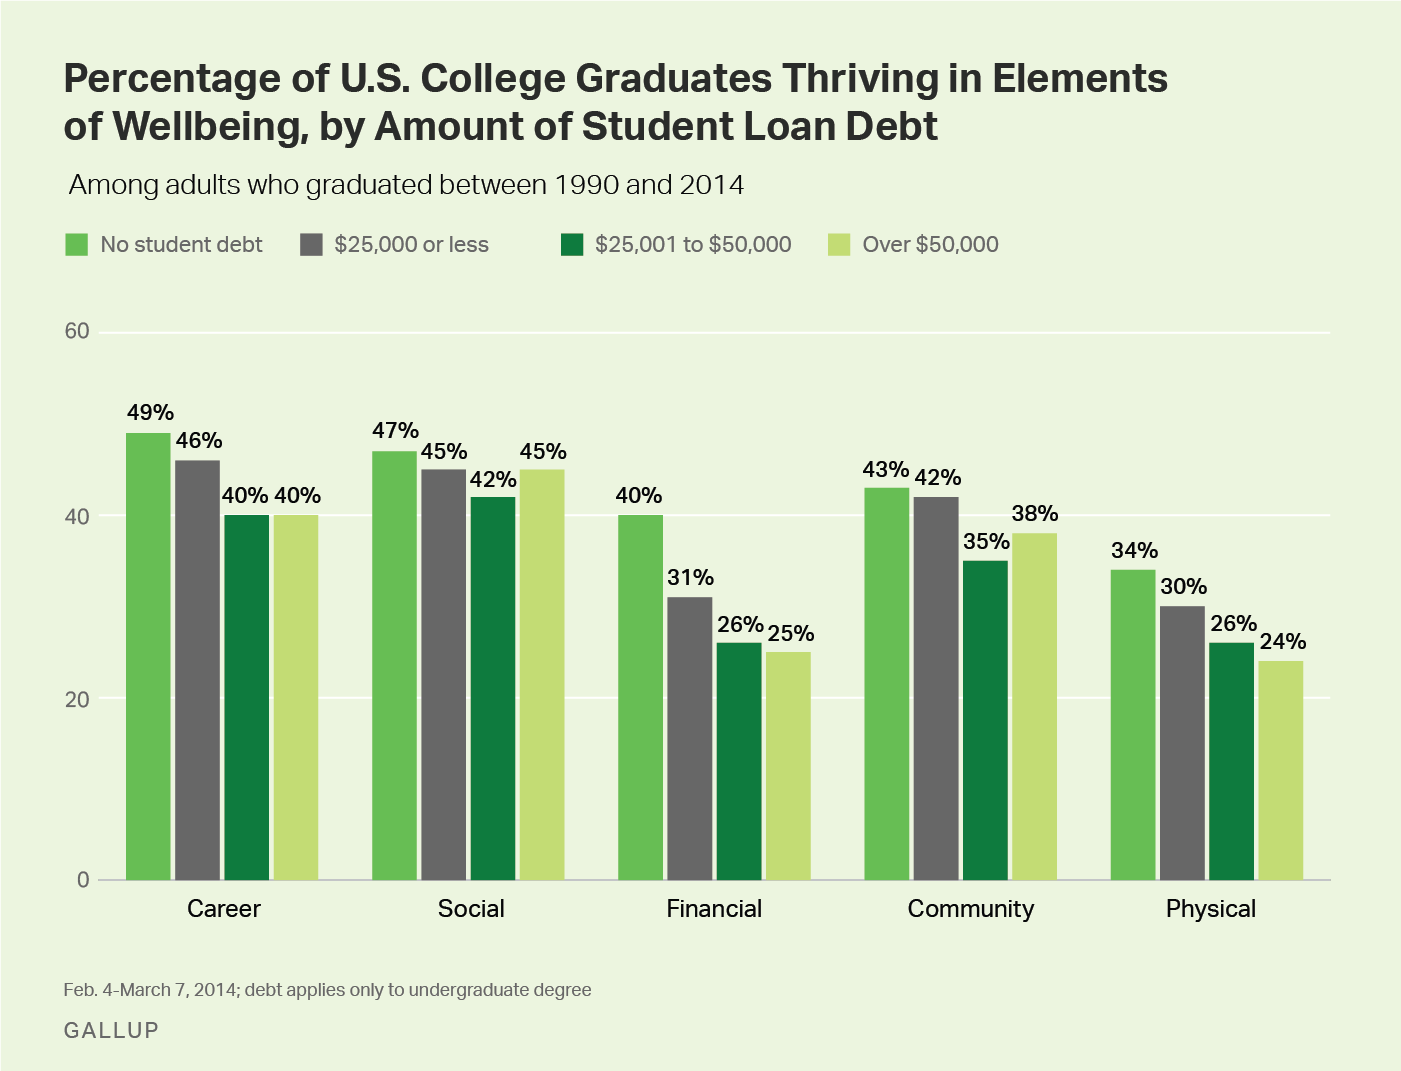 Percentage of graduates thriving in wellbeing, by student loan debt.